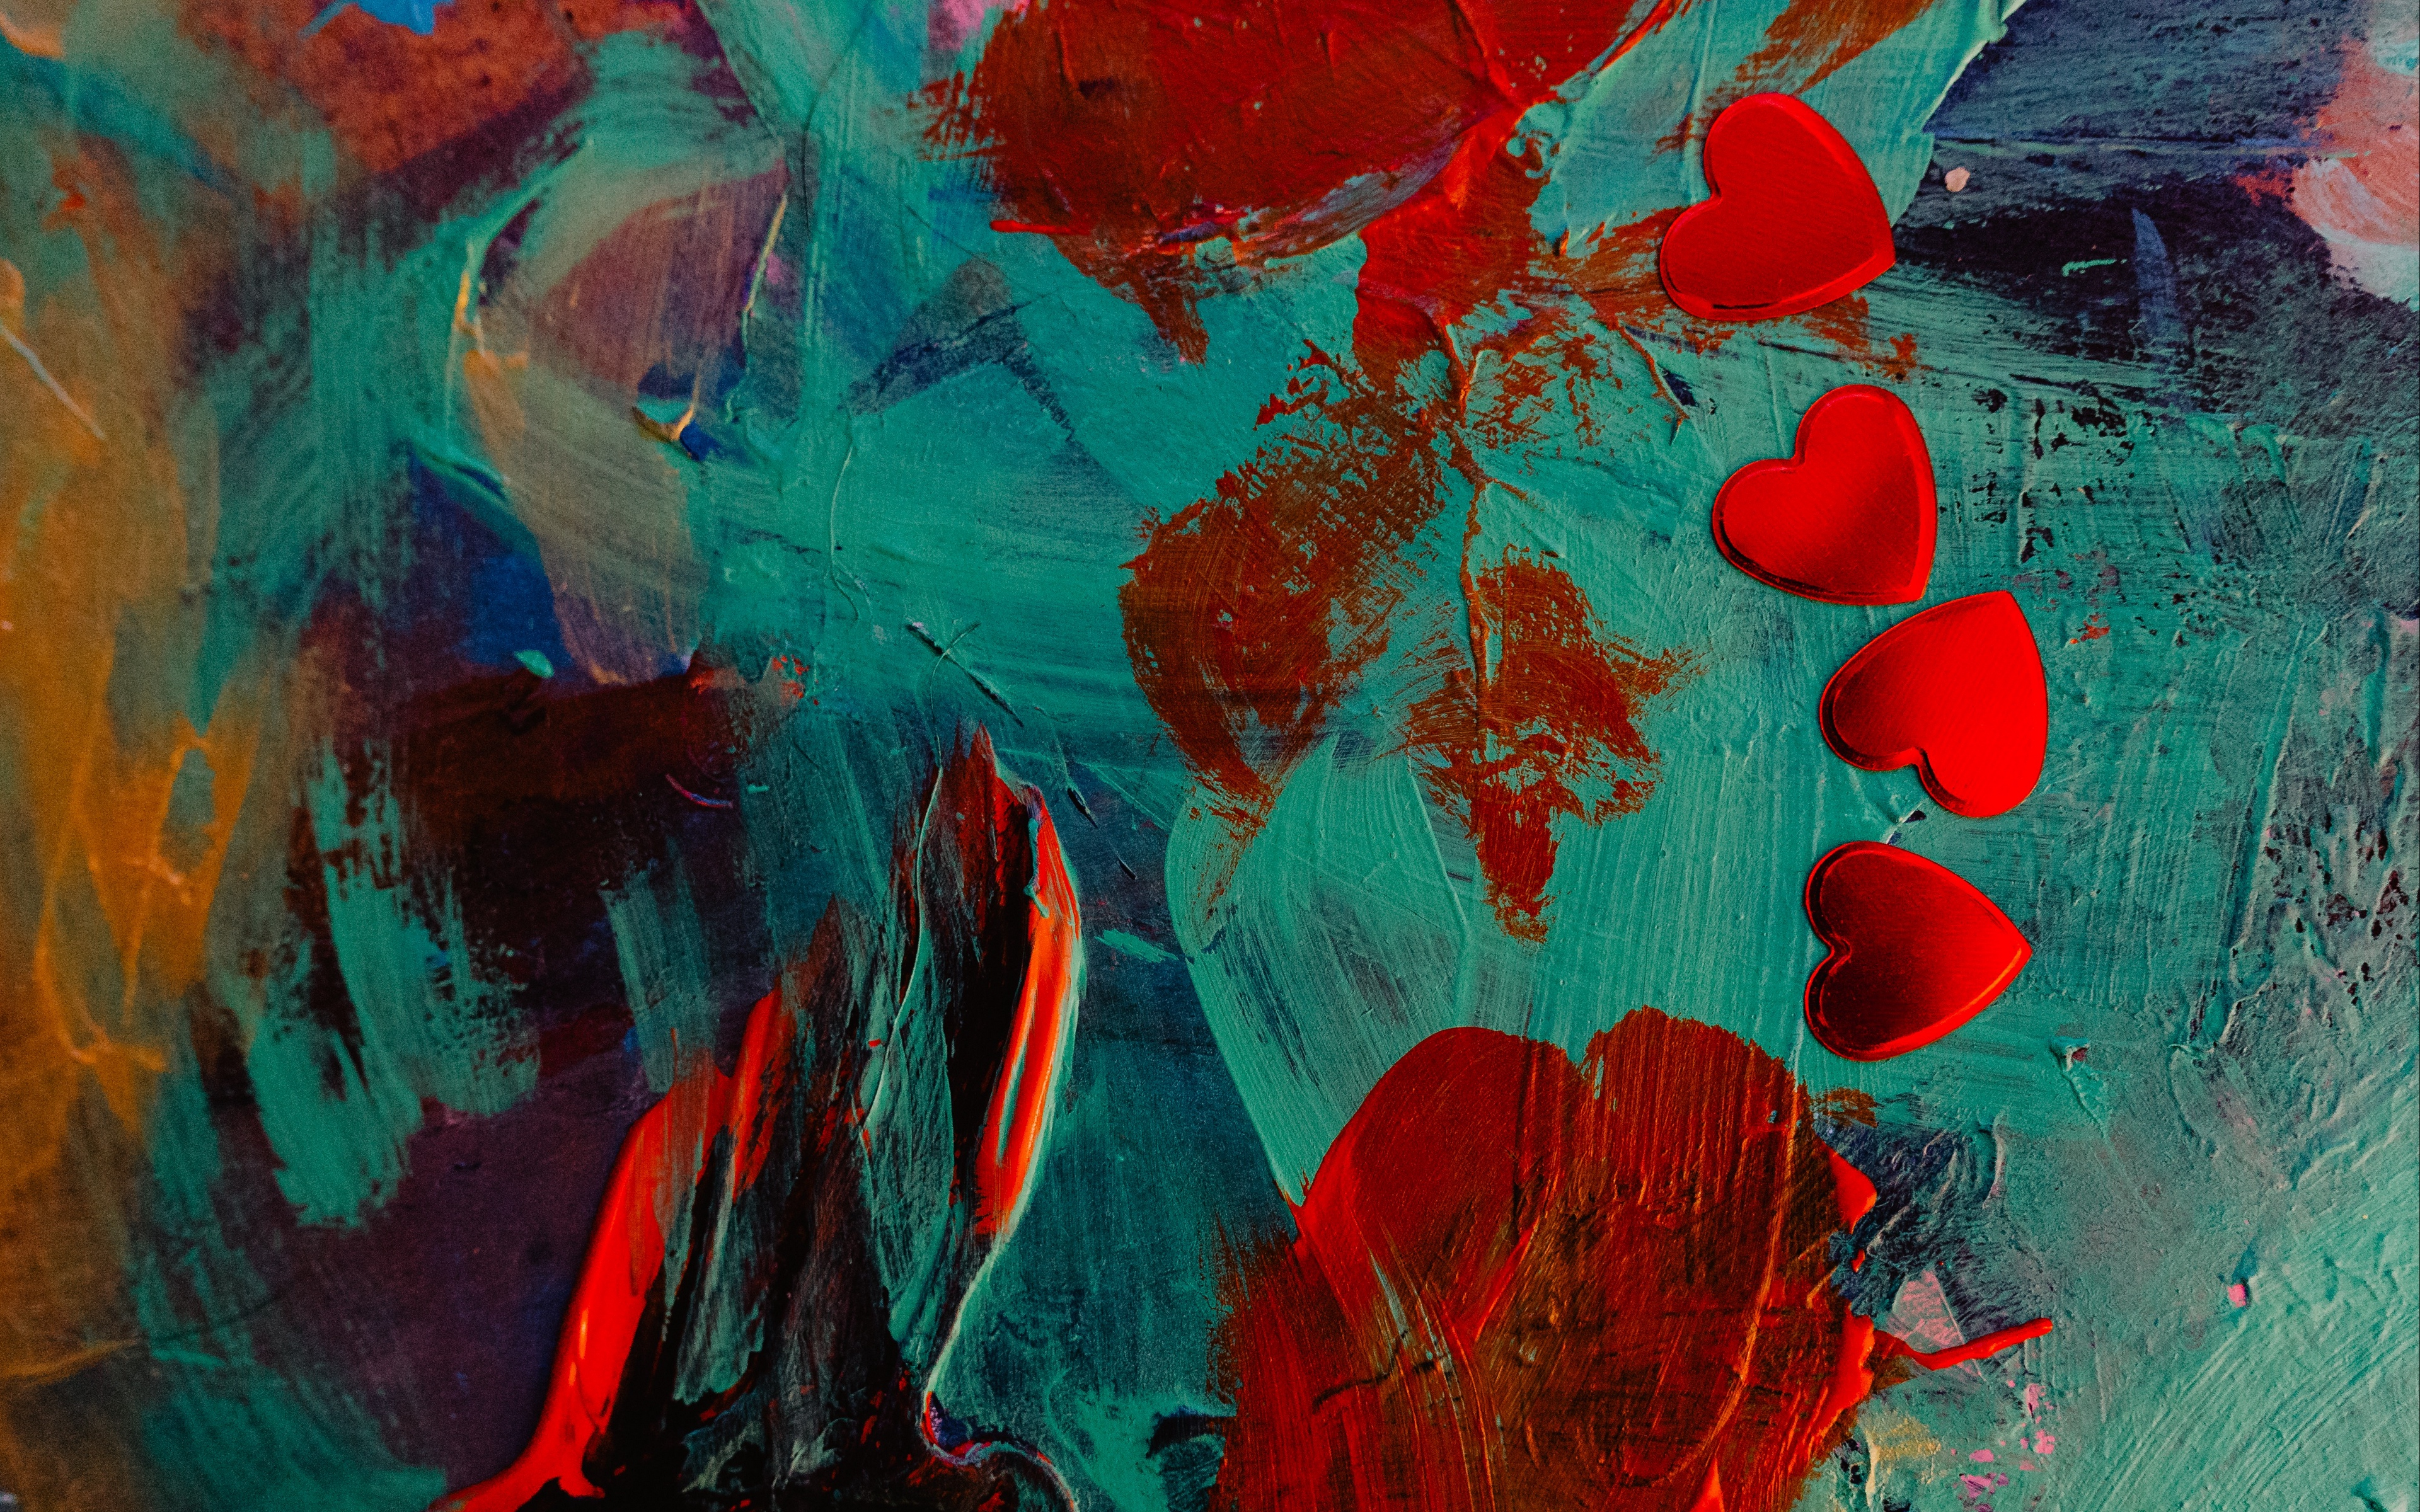 Wallpaper Paint, Hearts, Spots, Abstract - Abstract Paint Wallpaper 4k - HD Wallpaper